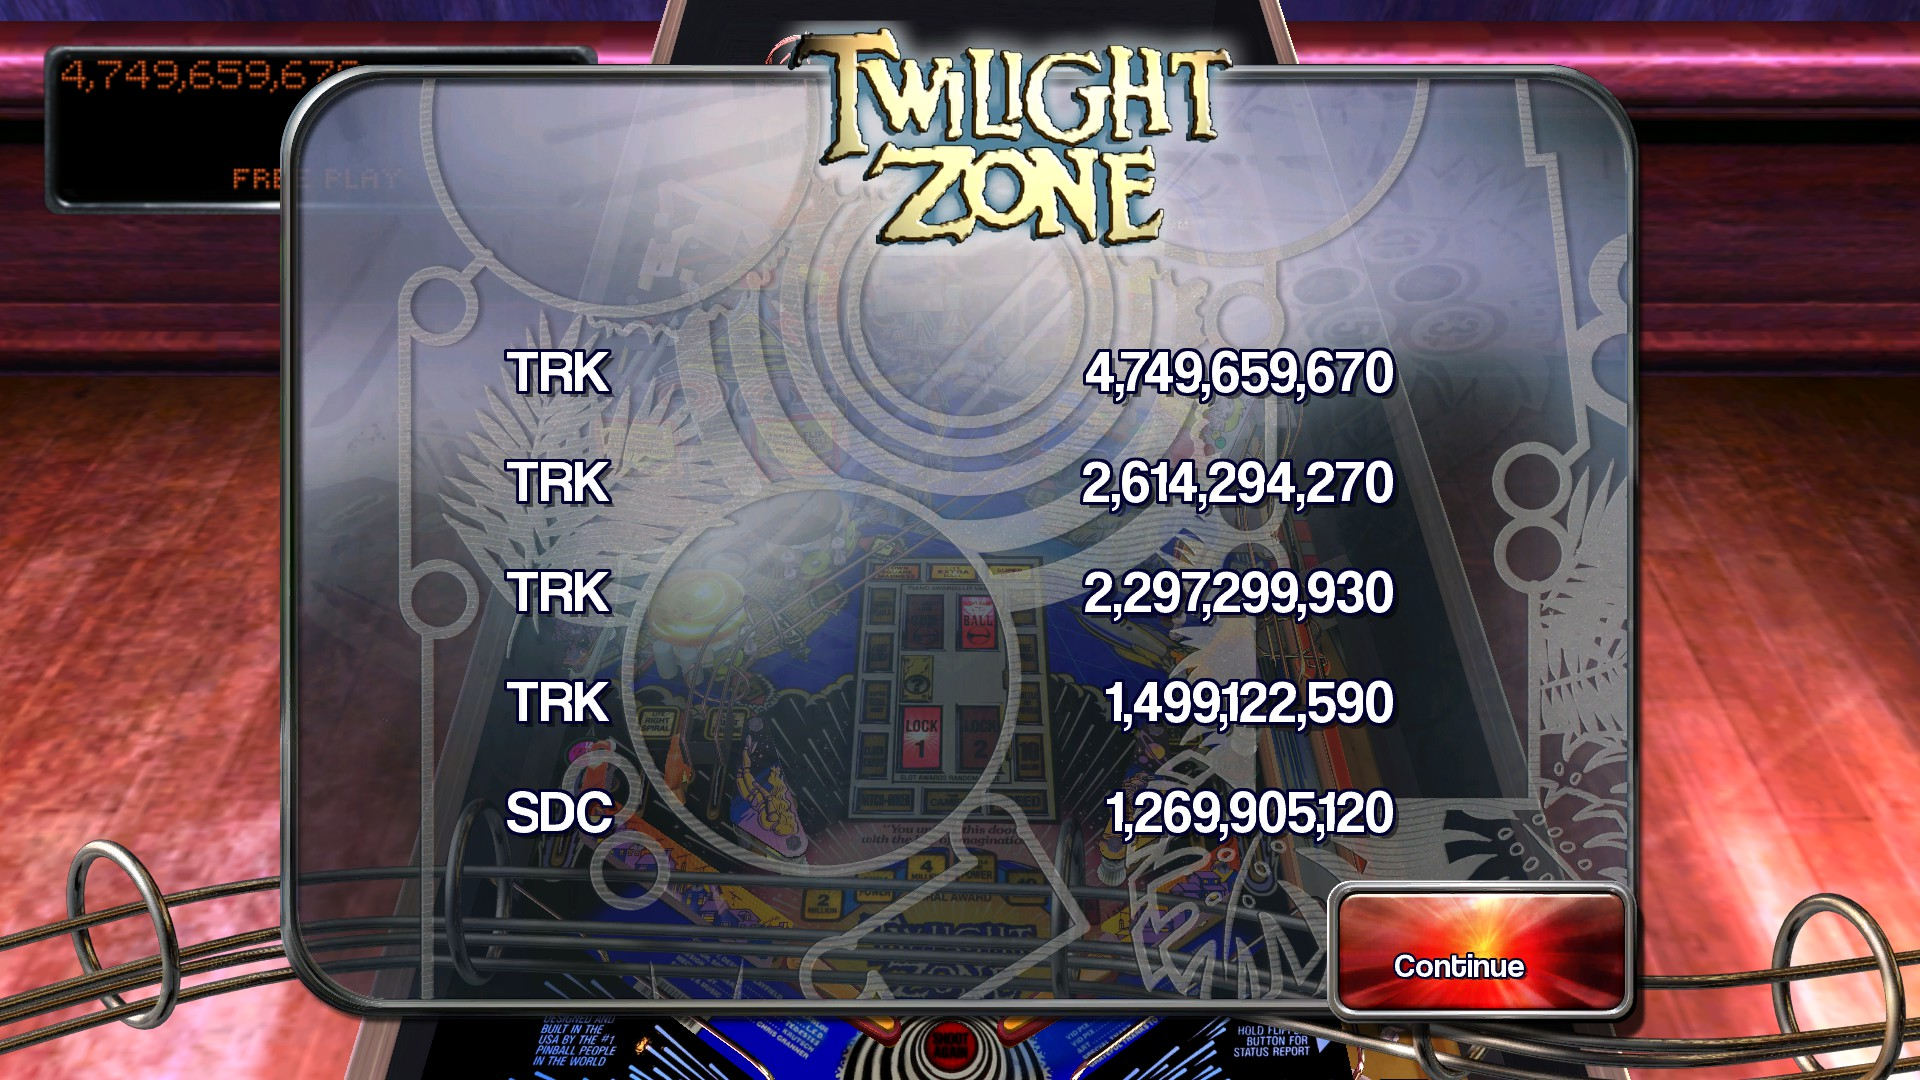 TheTrickster: Pinball Arcade: Twilight Zone (PC) 4,749,659,670 points on 2015-11-20 04:48:00